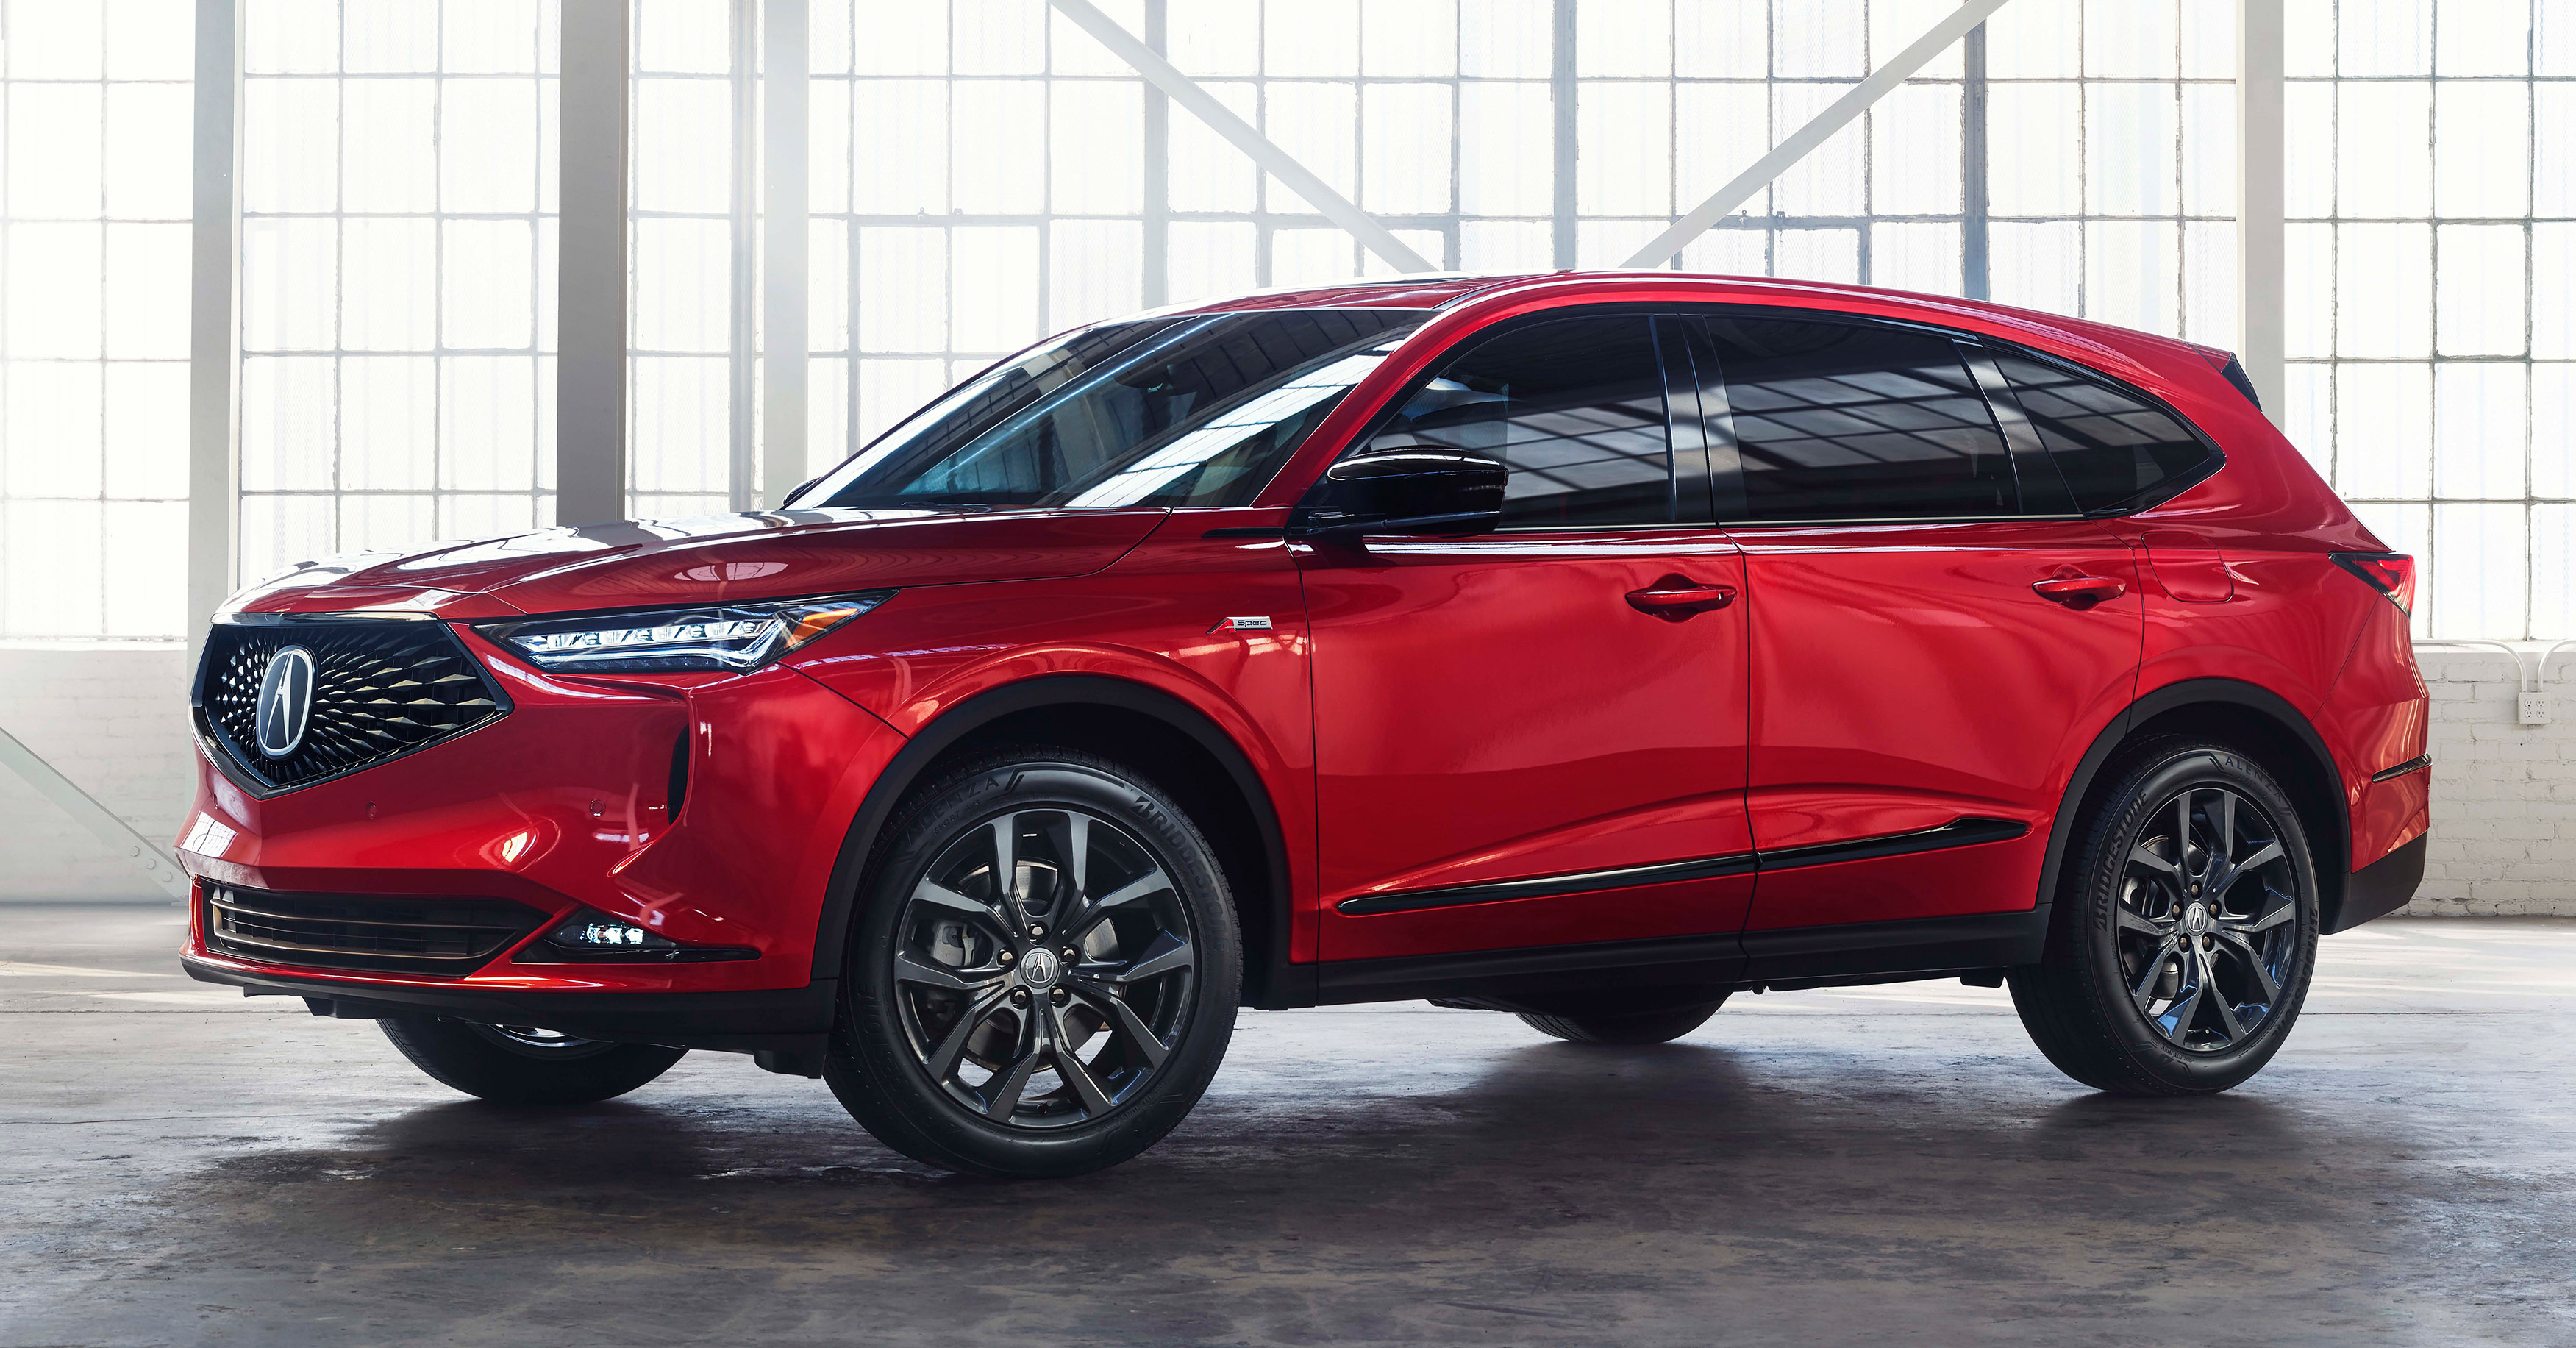 2022 Acura Mdx Debuts All New Three Row Suv Gets New Chassis 3 5l V6 And Tech Type S To Arrive Later Paultan Org